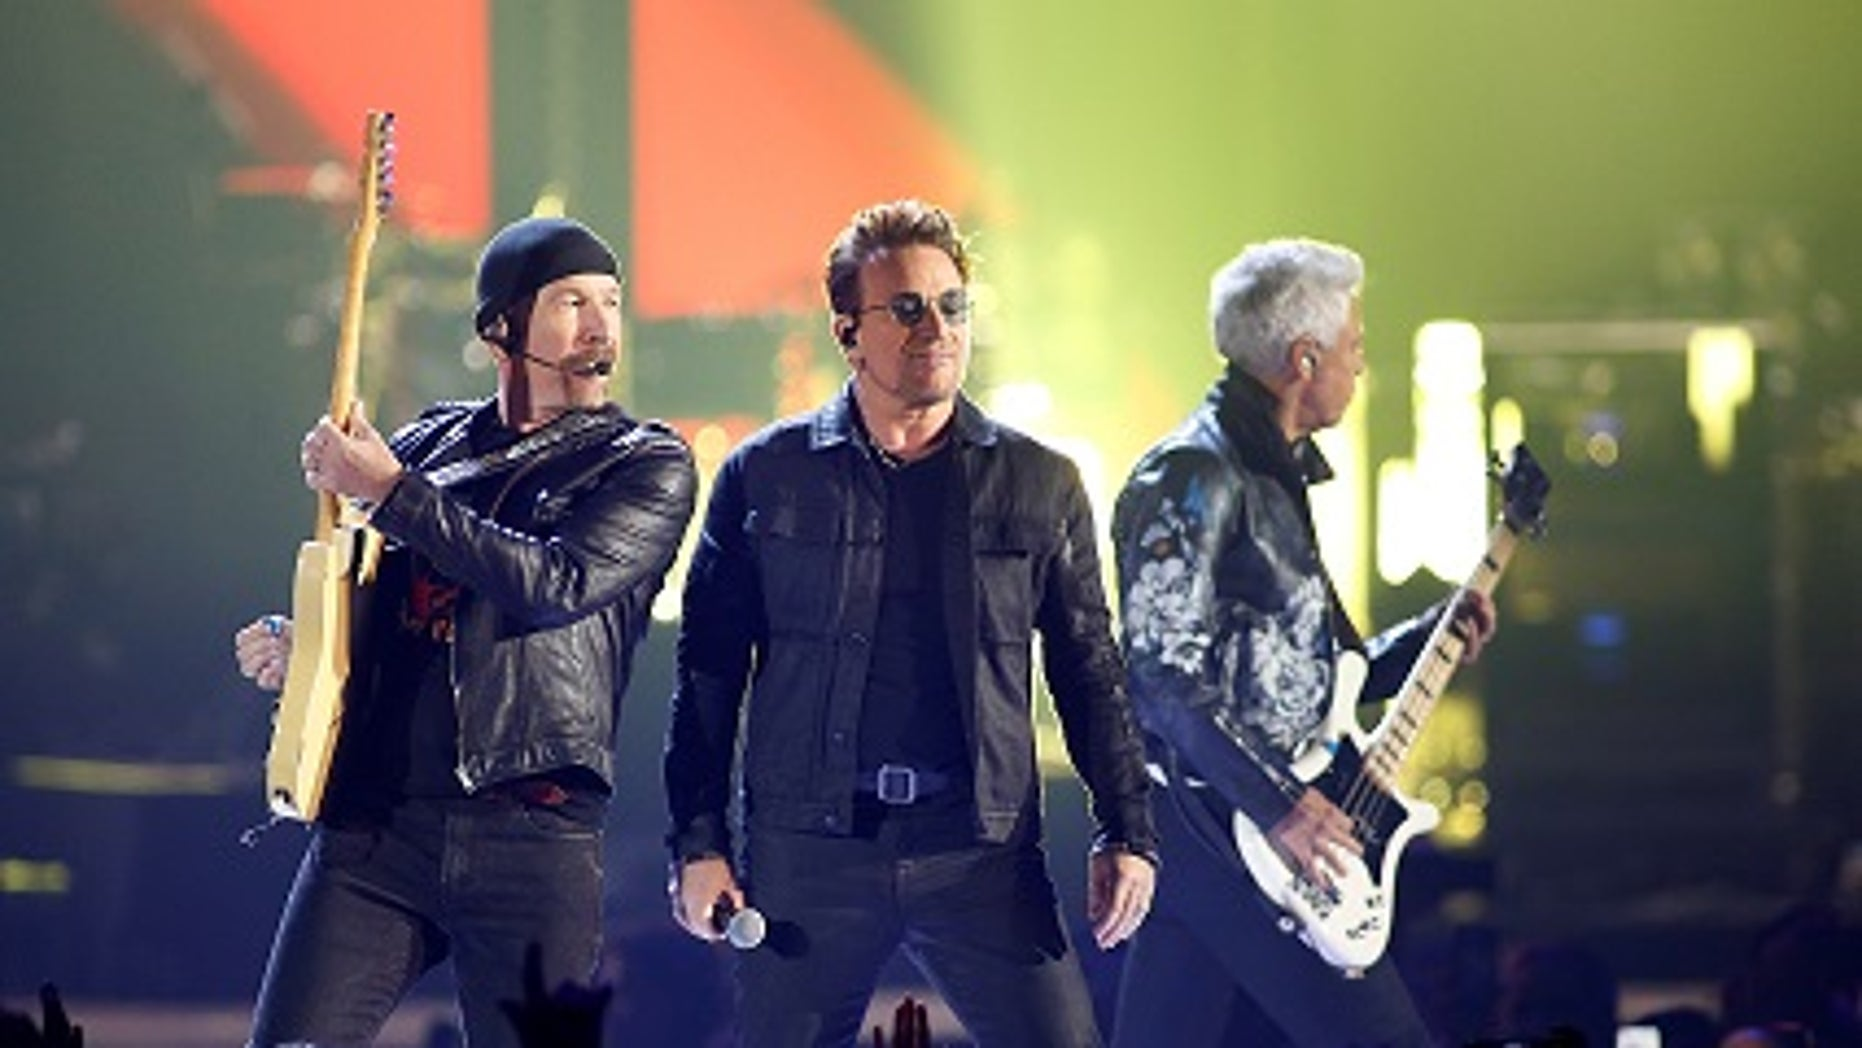 U2 canceled their concert slated for Saturday night in St. Louis.